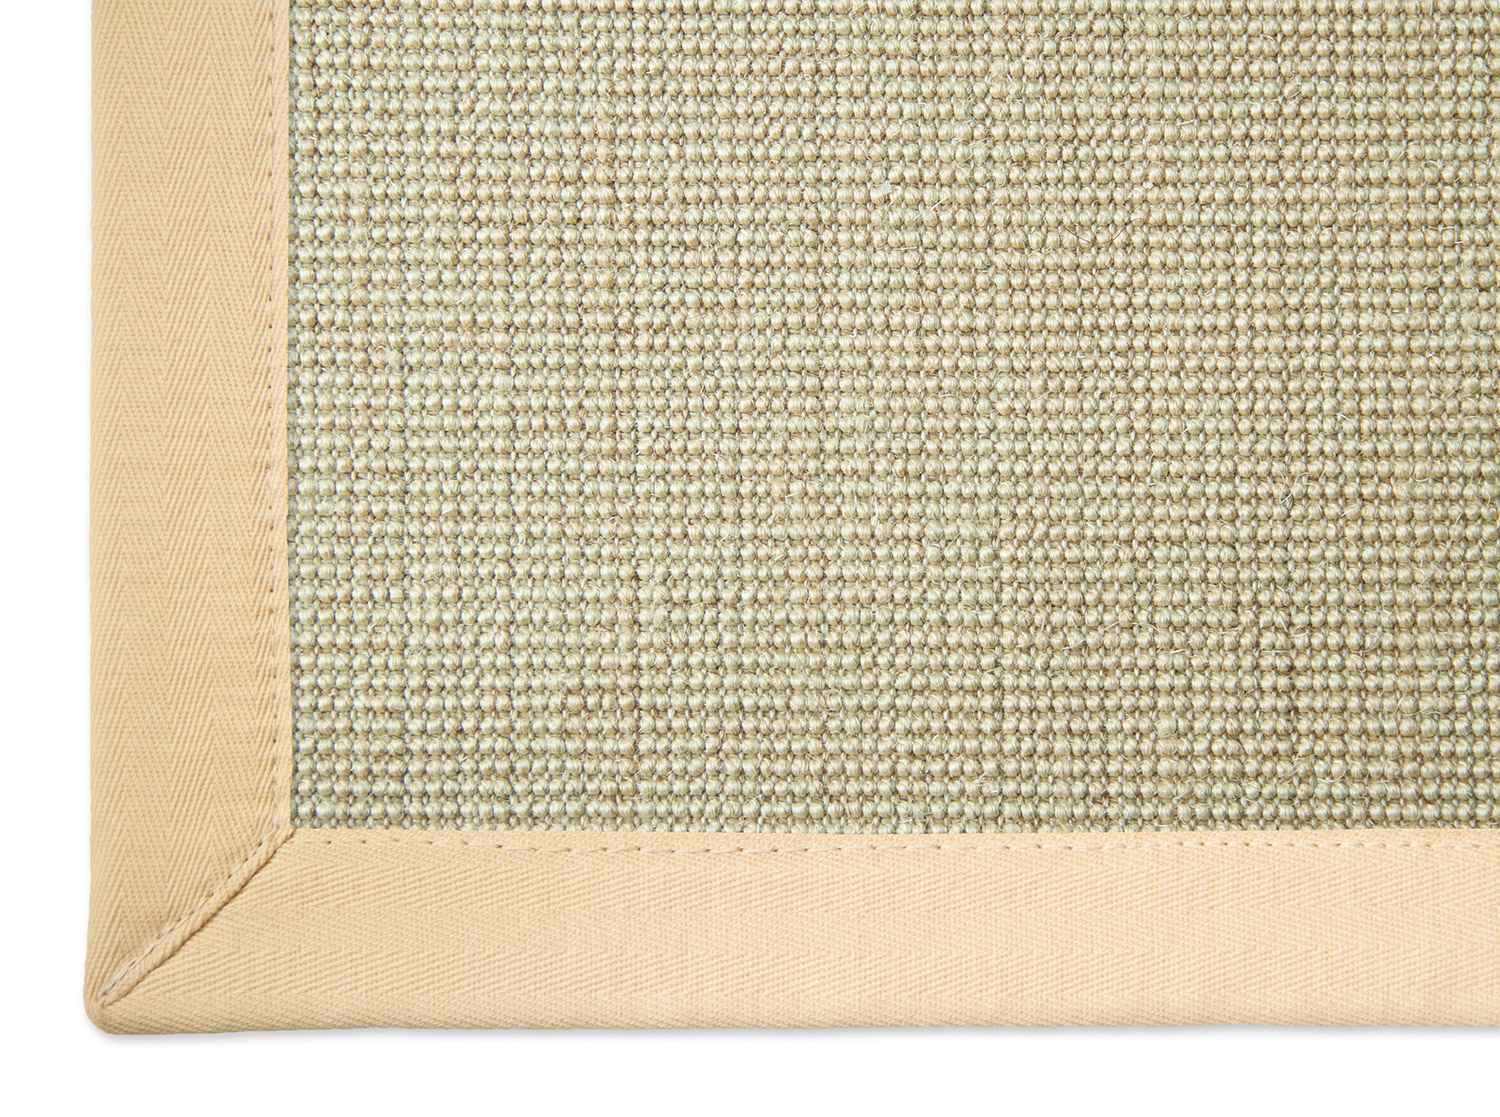 Outdoor Teppich Hochflor Sisal Teppich 140x200 Simple Full Size Of Outdoor Velour